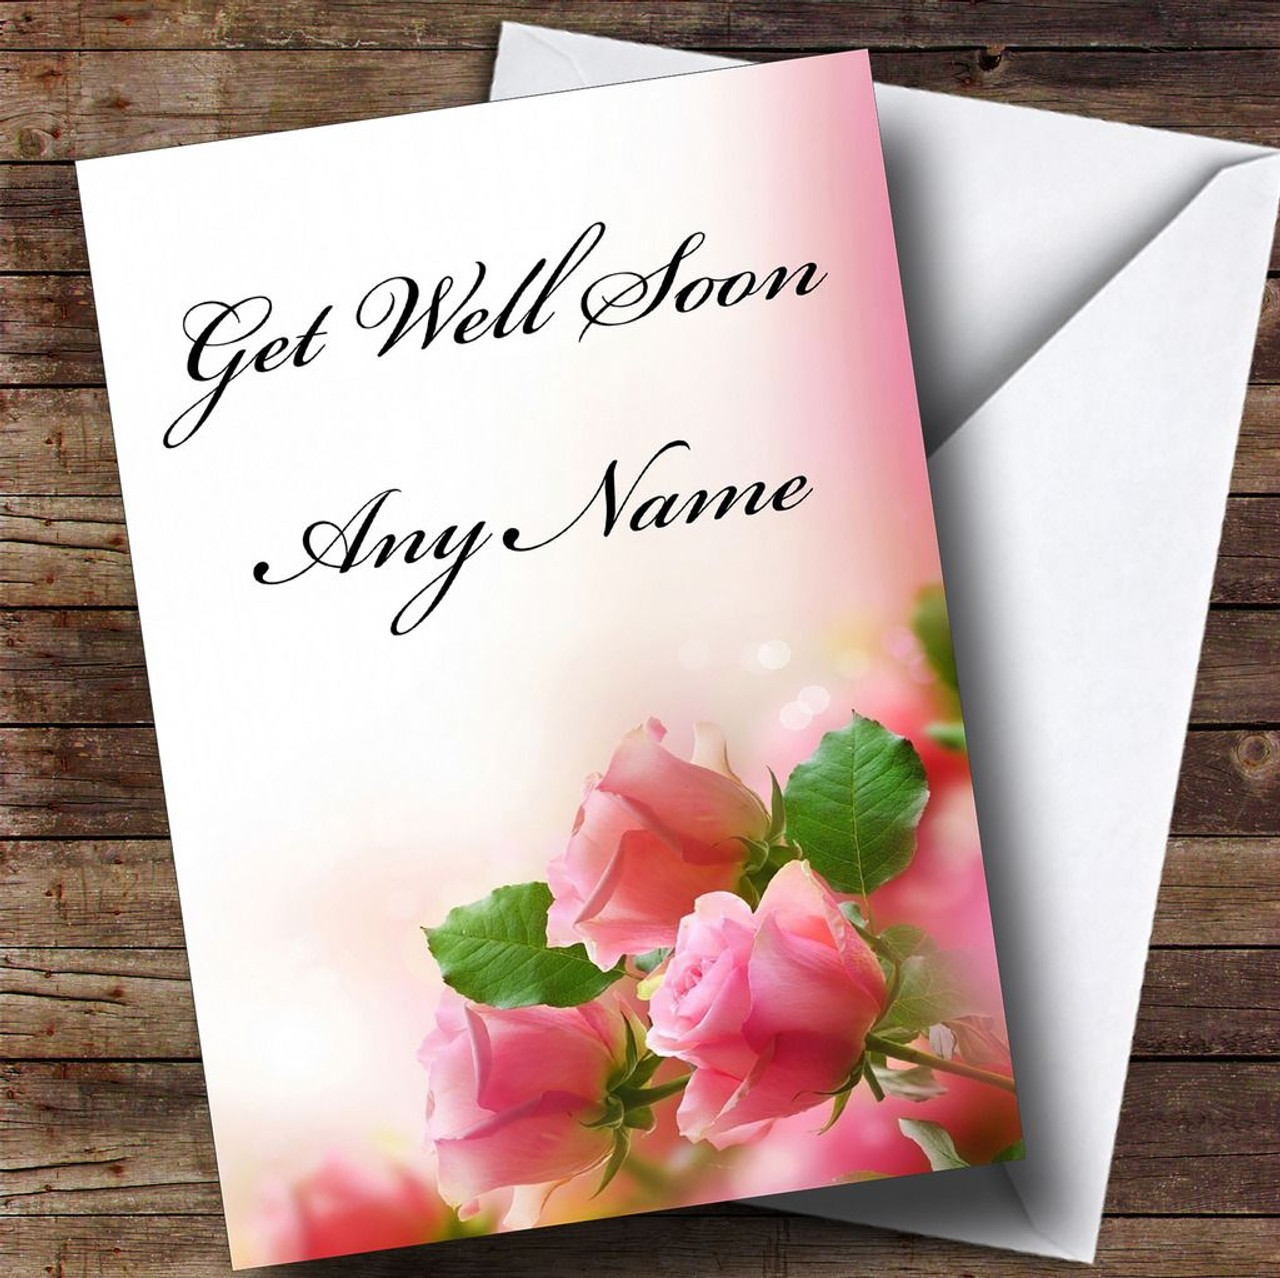 Fetching Her Kids Get Well Soon Quotes Pink Roses Personalised Get Well Soon Card Pink Roses Personalised Get Well Soon Card Card Zoo Get Well Soon Quotes cards Get Well Soon Cute